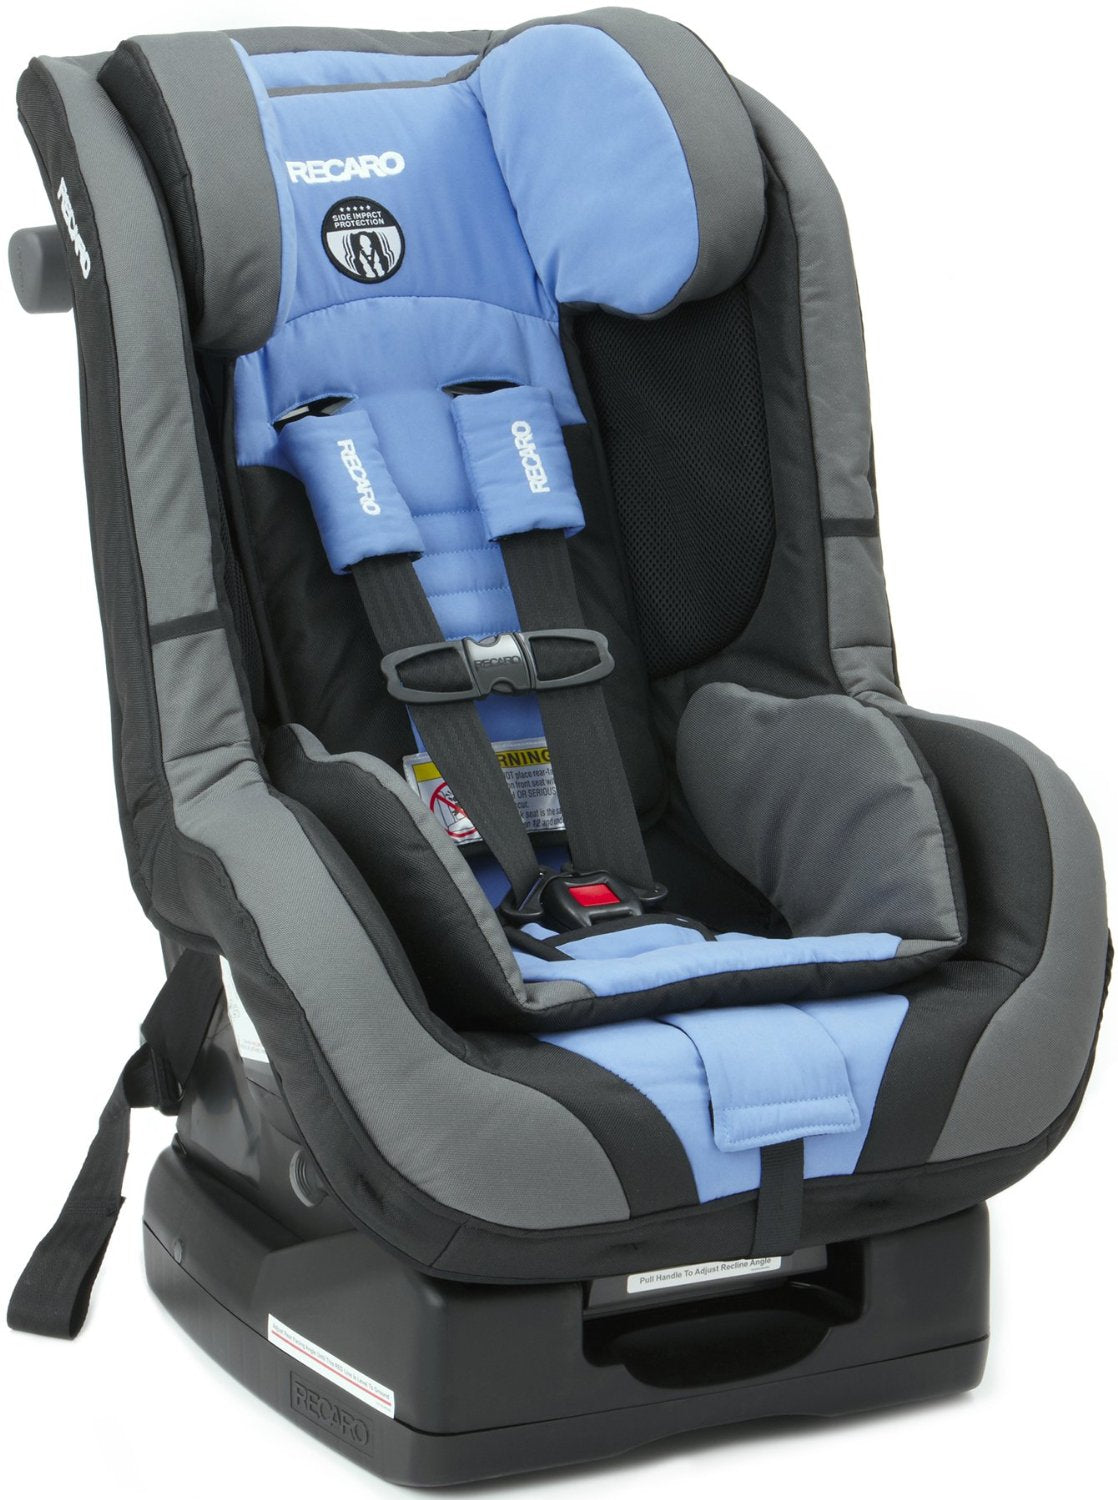 Car Seat, All Baby Car Seats Are Safe And Yet Some Can Be Better Than Others